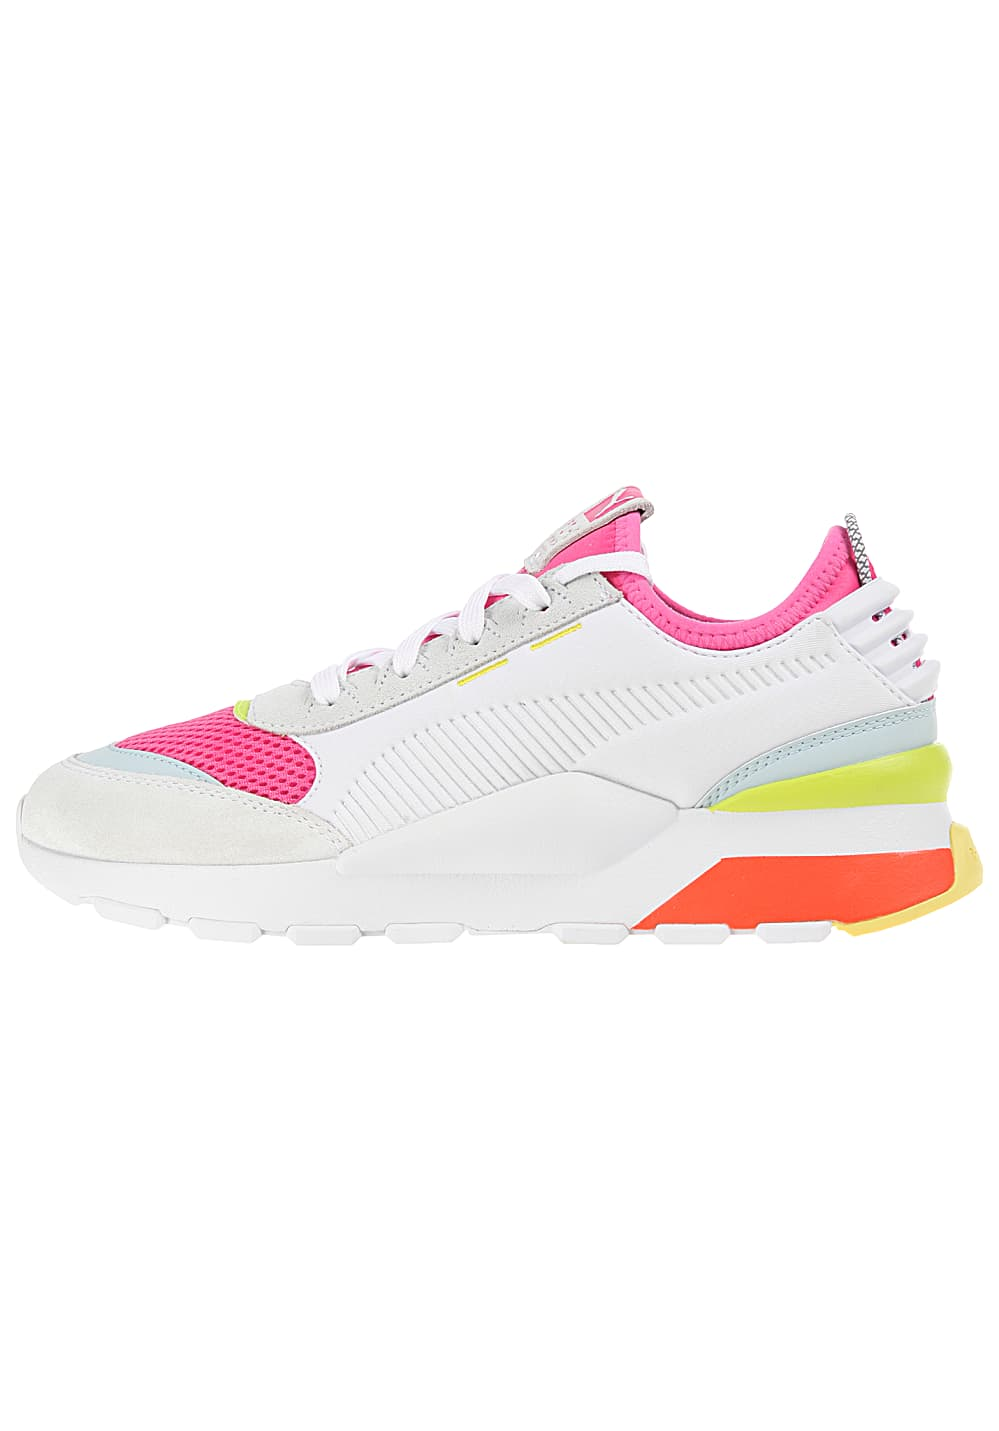 factory outlets 100% quality quarantee 2019 hot sale Puma Rs-0 Winter Inj Toys - Sneakers - White